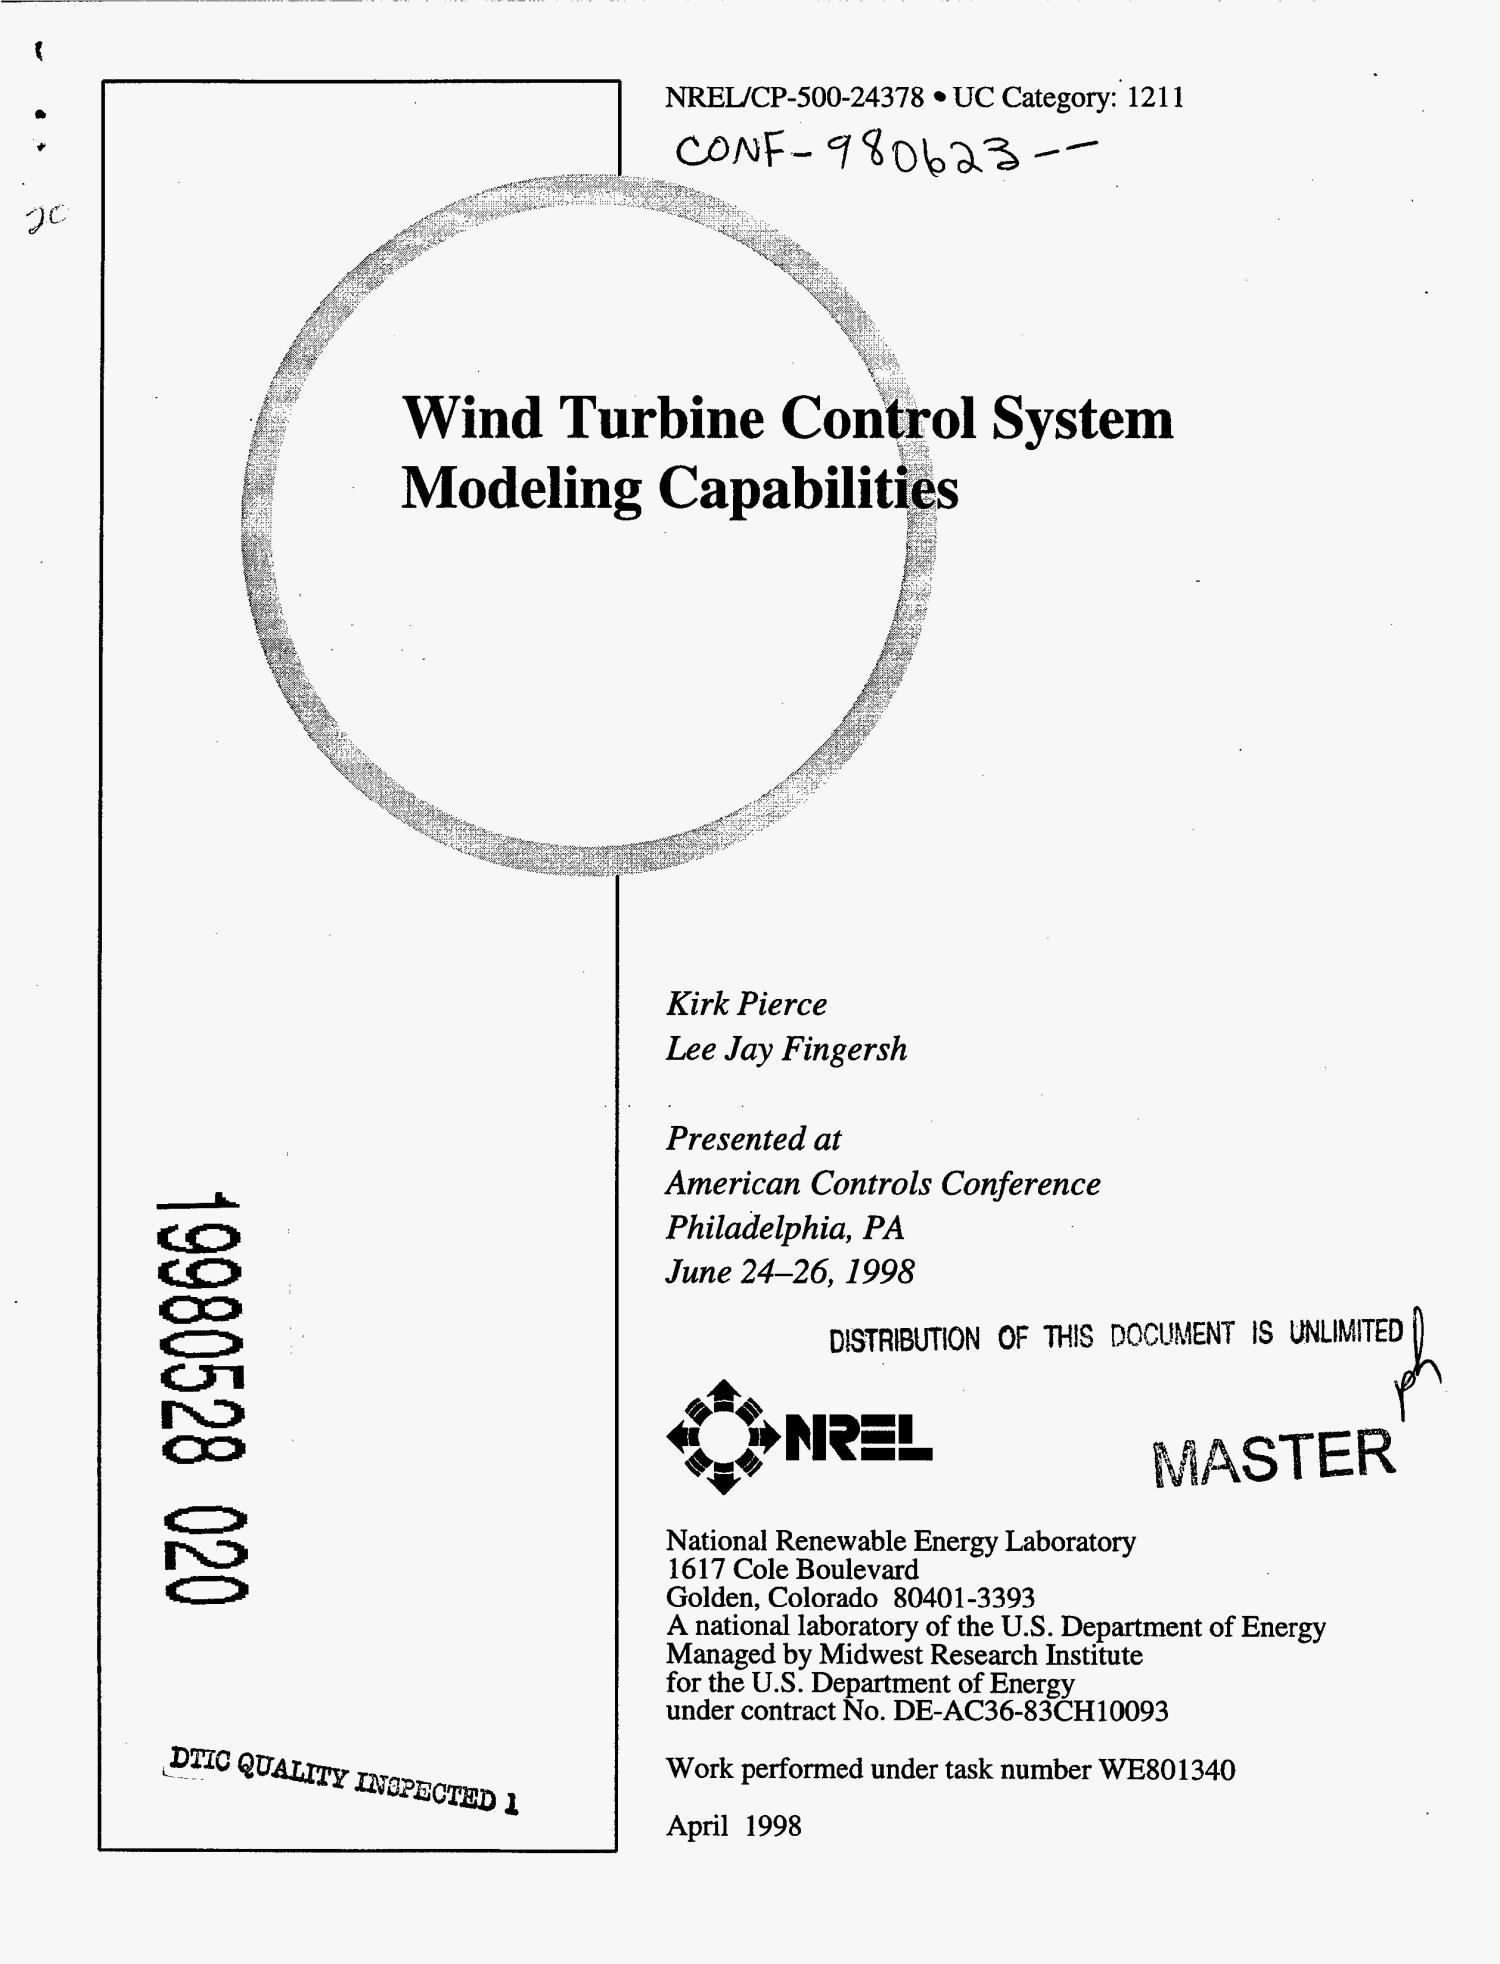 Wind turbine control system modeling capabilities                                                                                                      [Sequence #]: 1 of 8